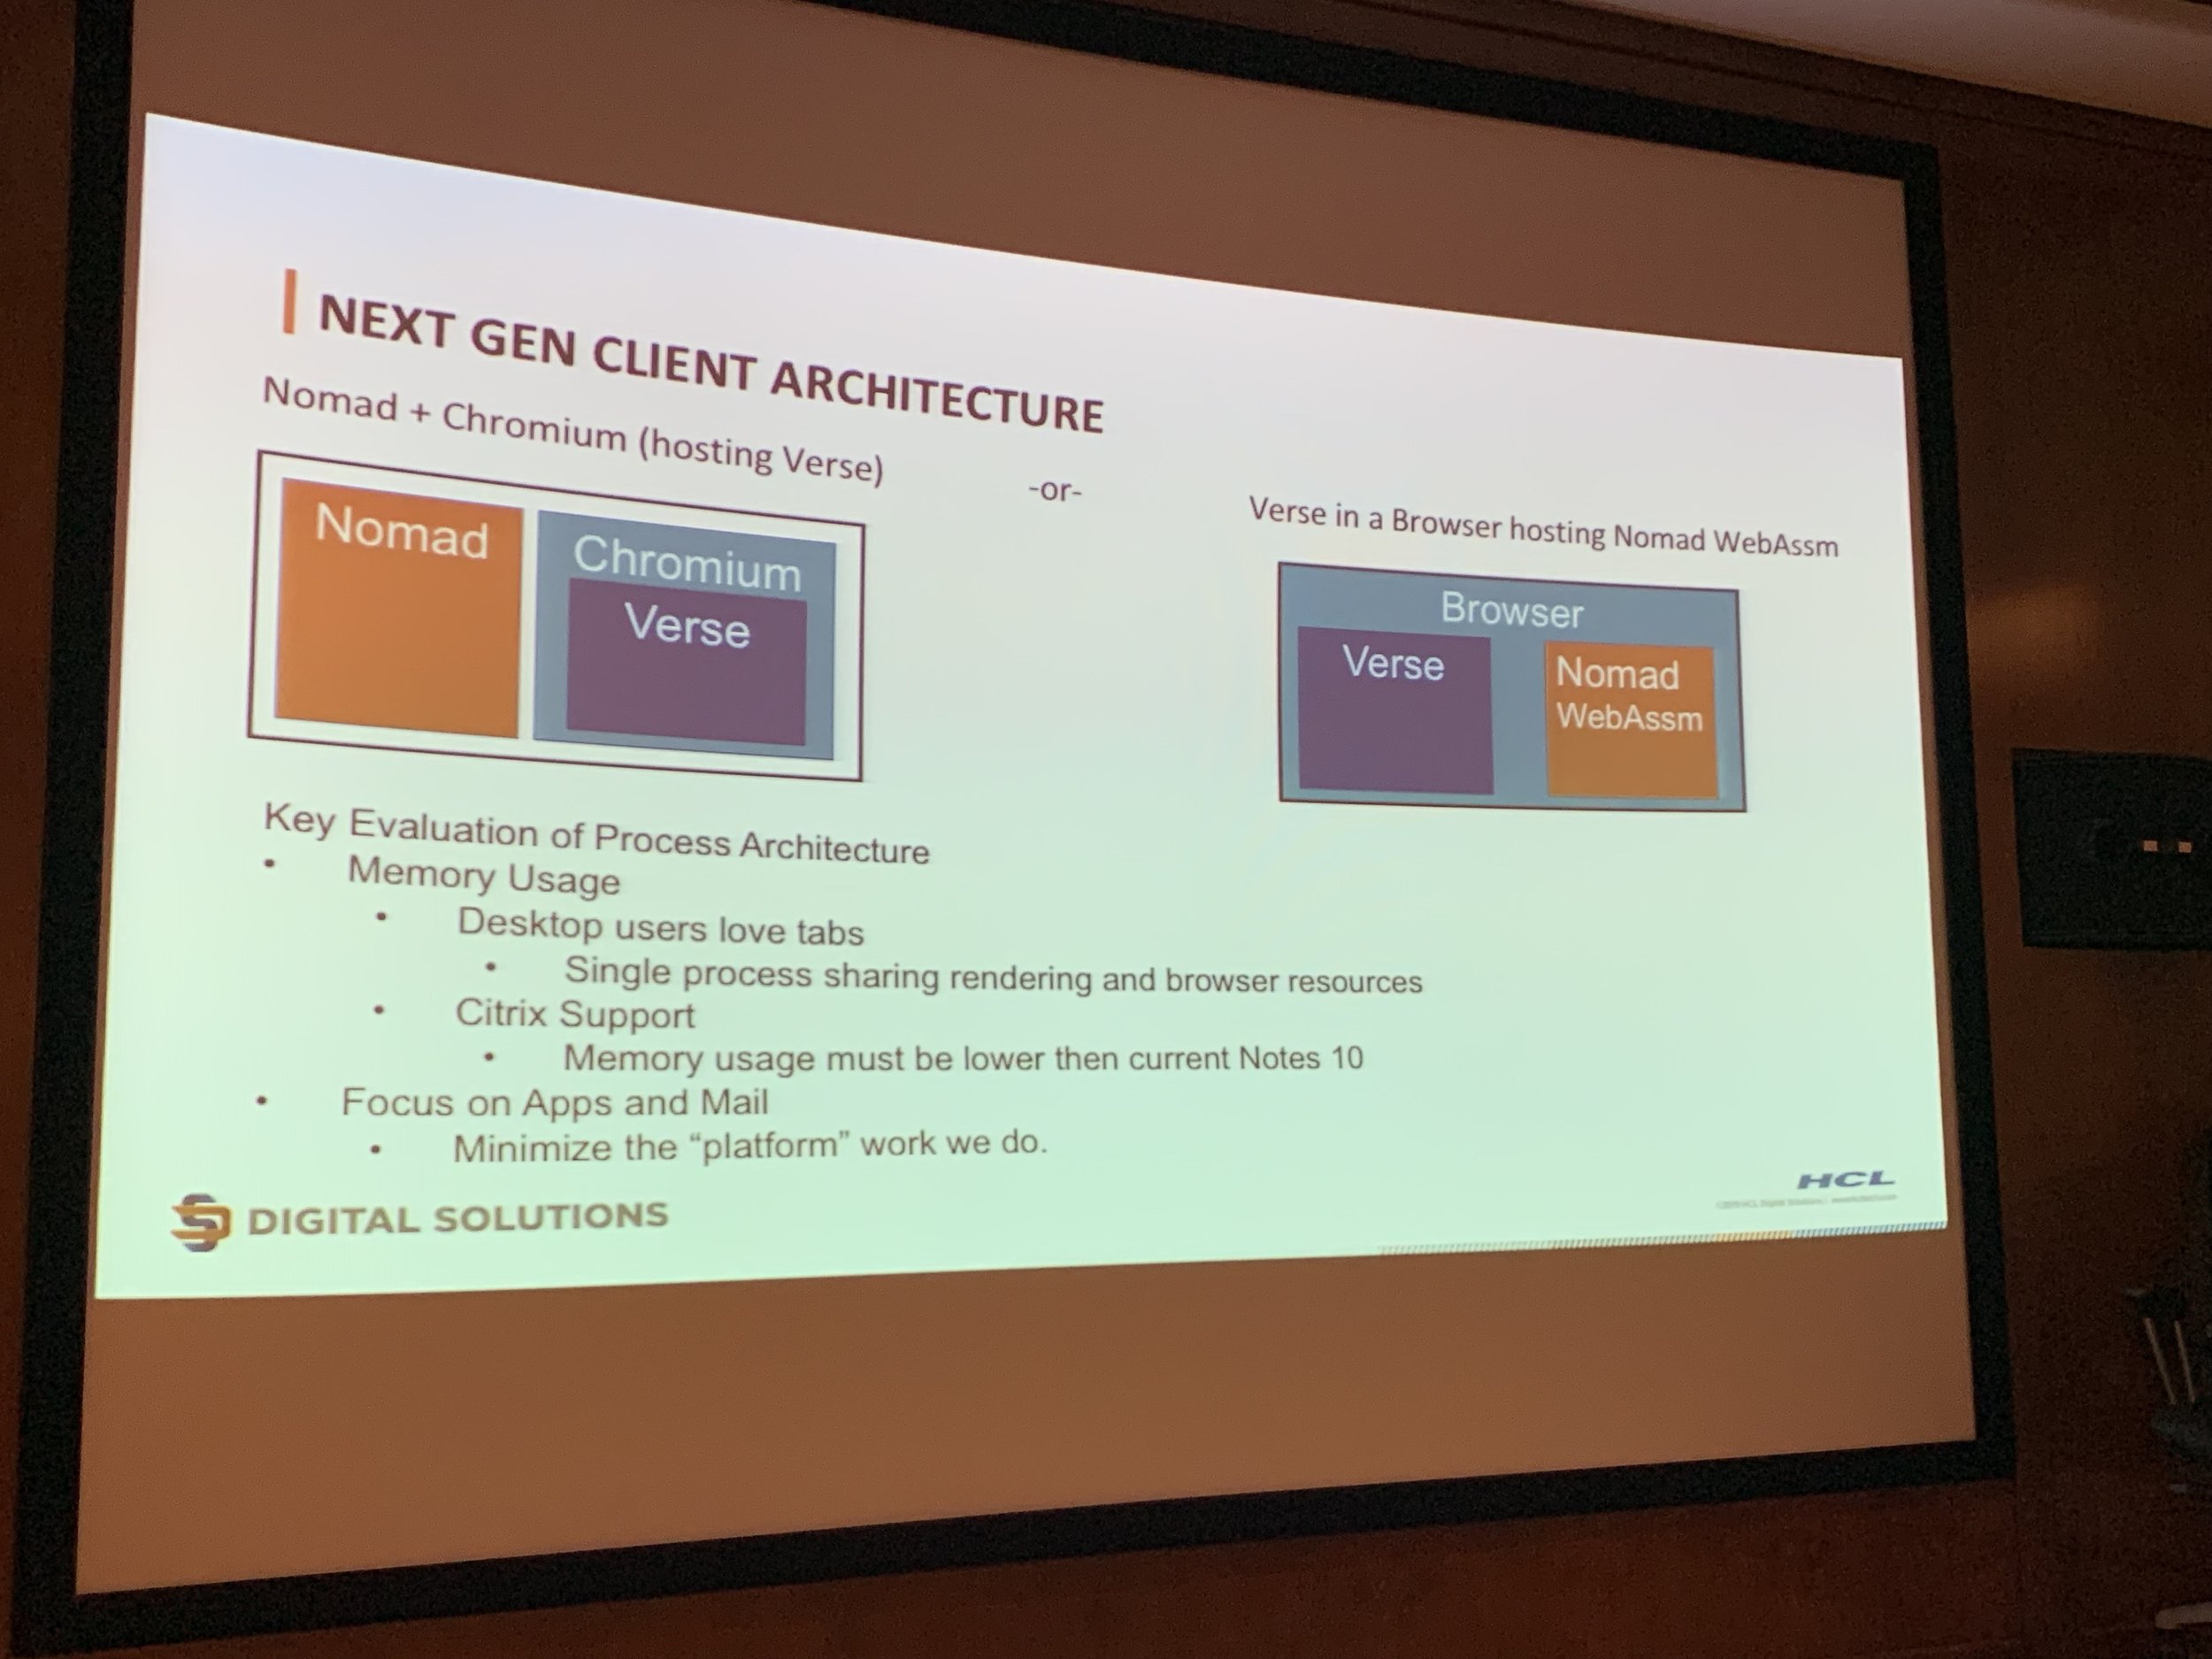 Andrews chart of the next gen client architecture alternatives.